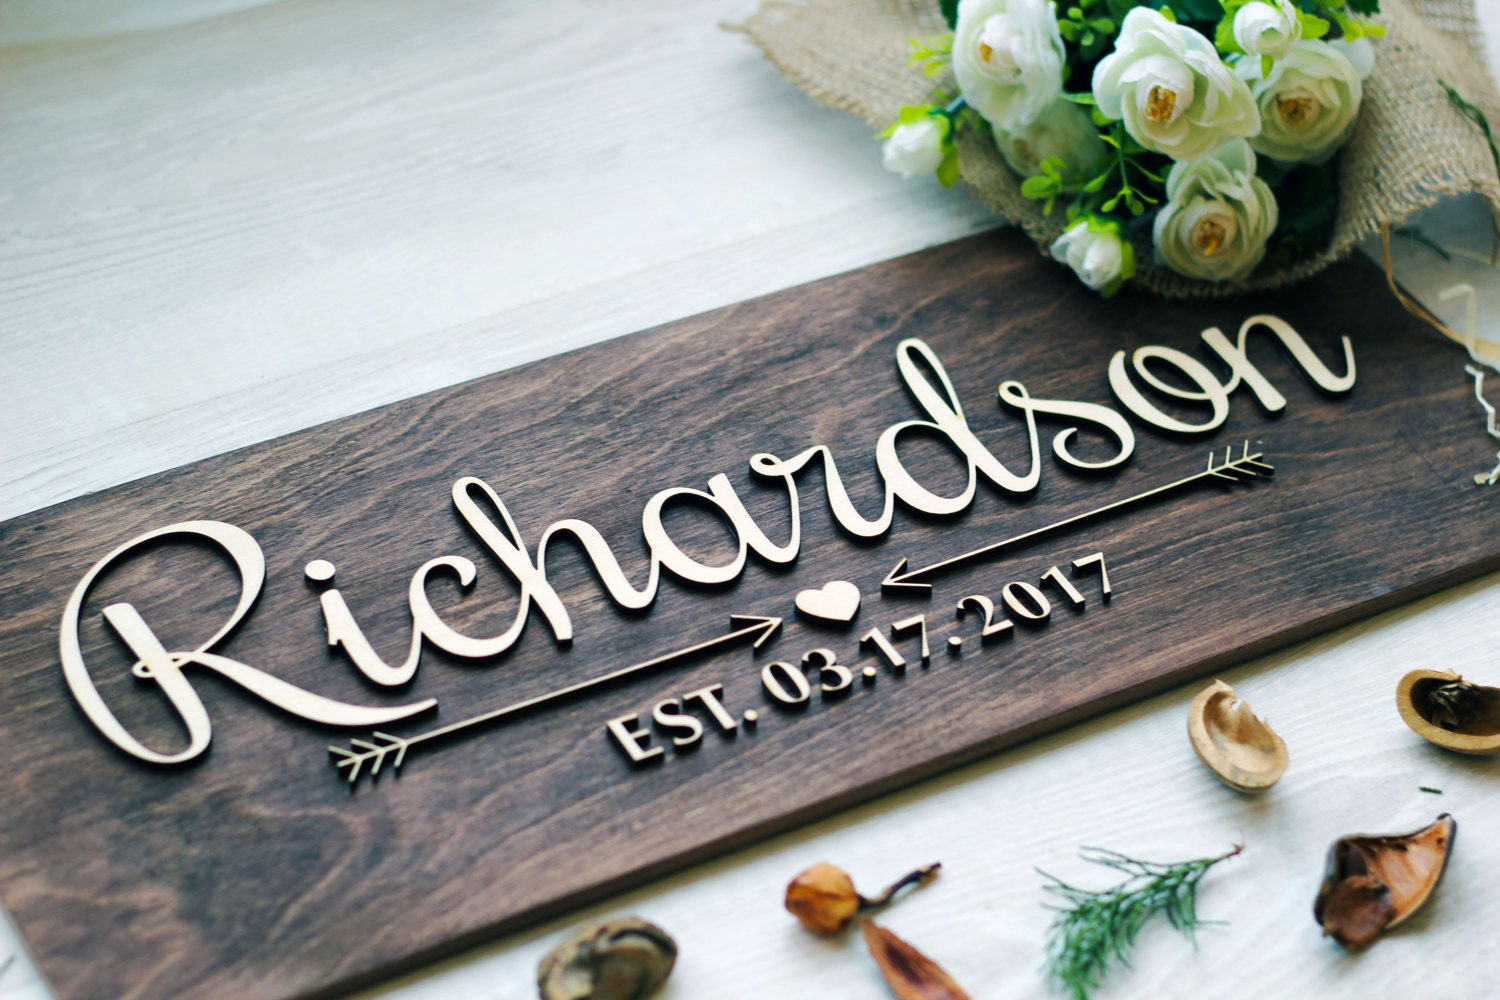 Wedding last name sign wedding established family sign wall zoom amipublicfo Image collections